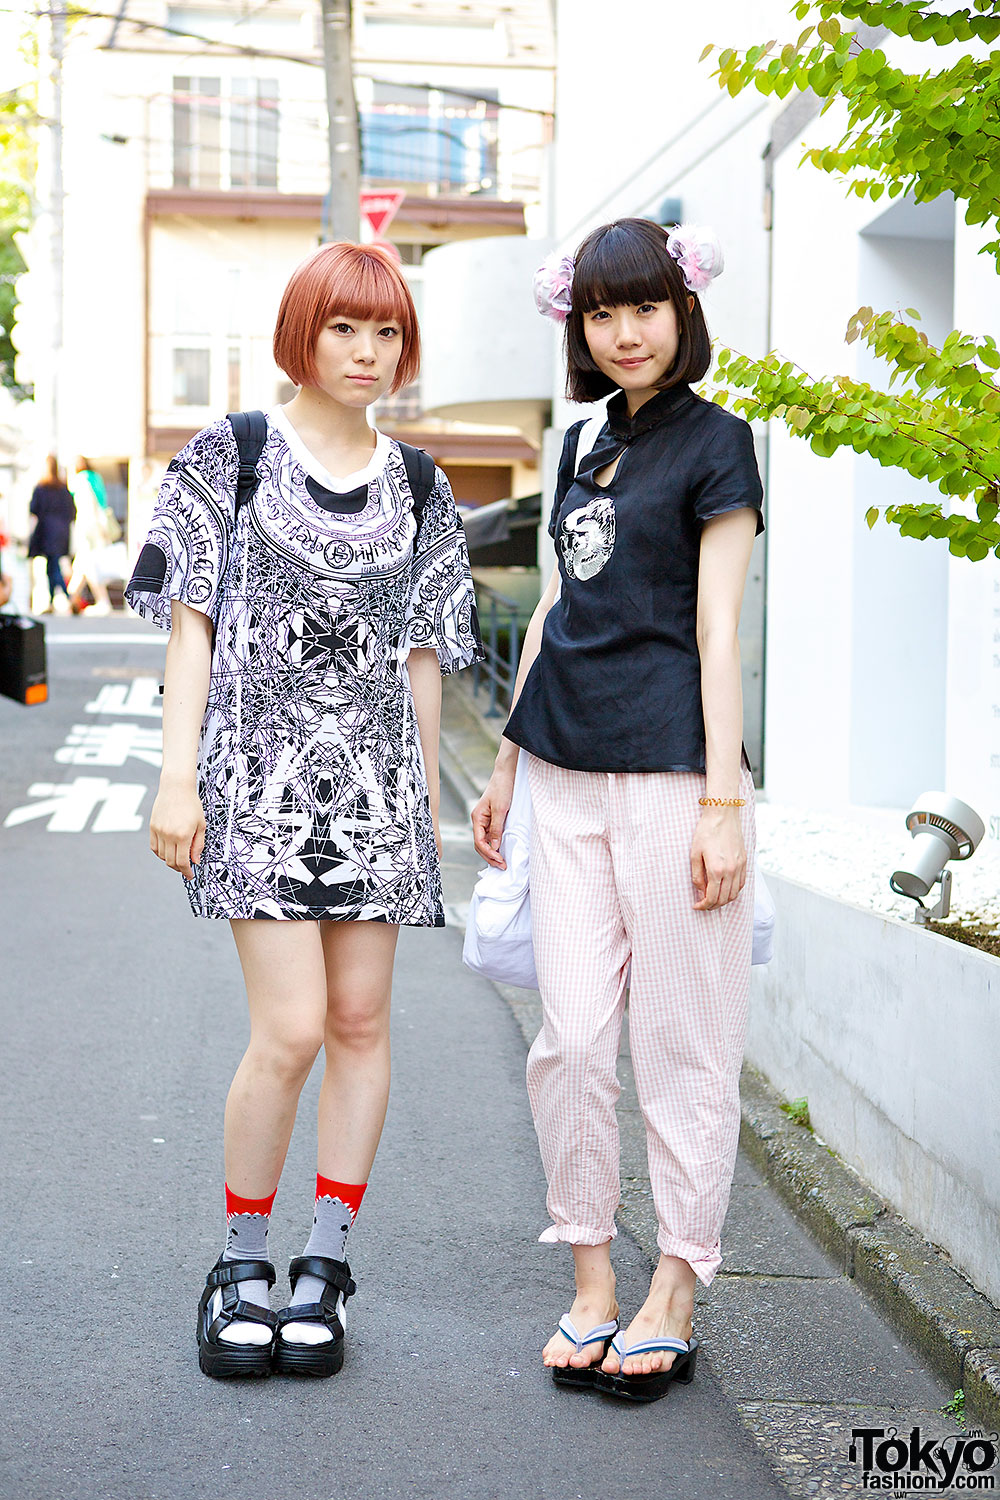 Harajuku Girls with Bob Hairstyles